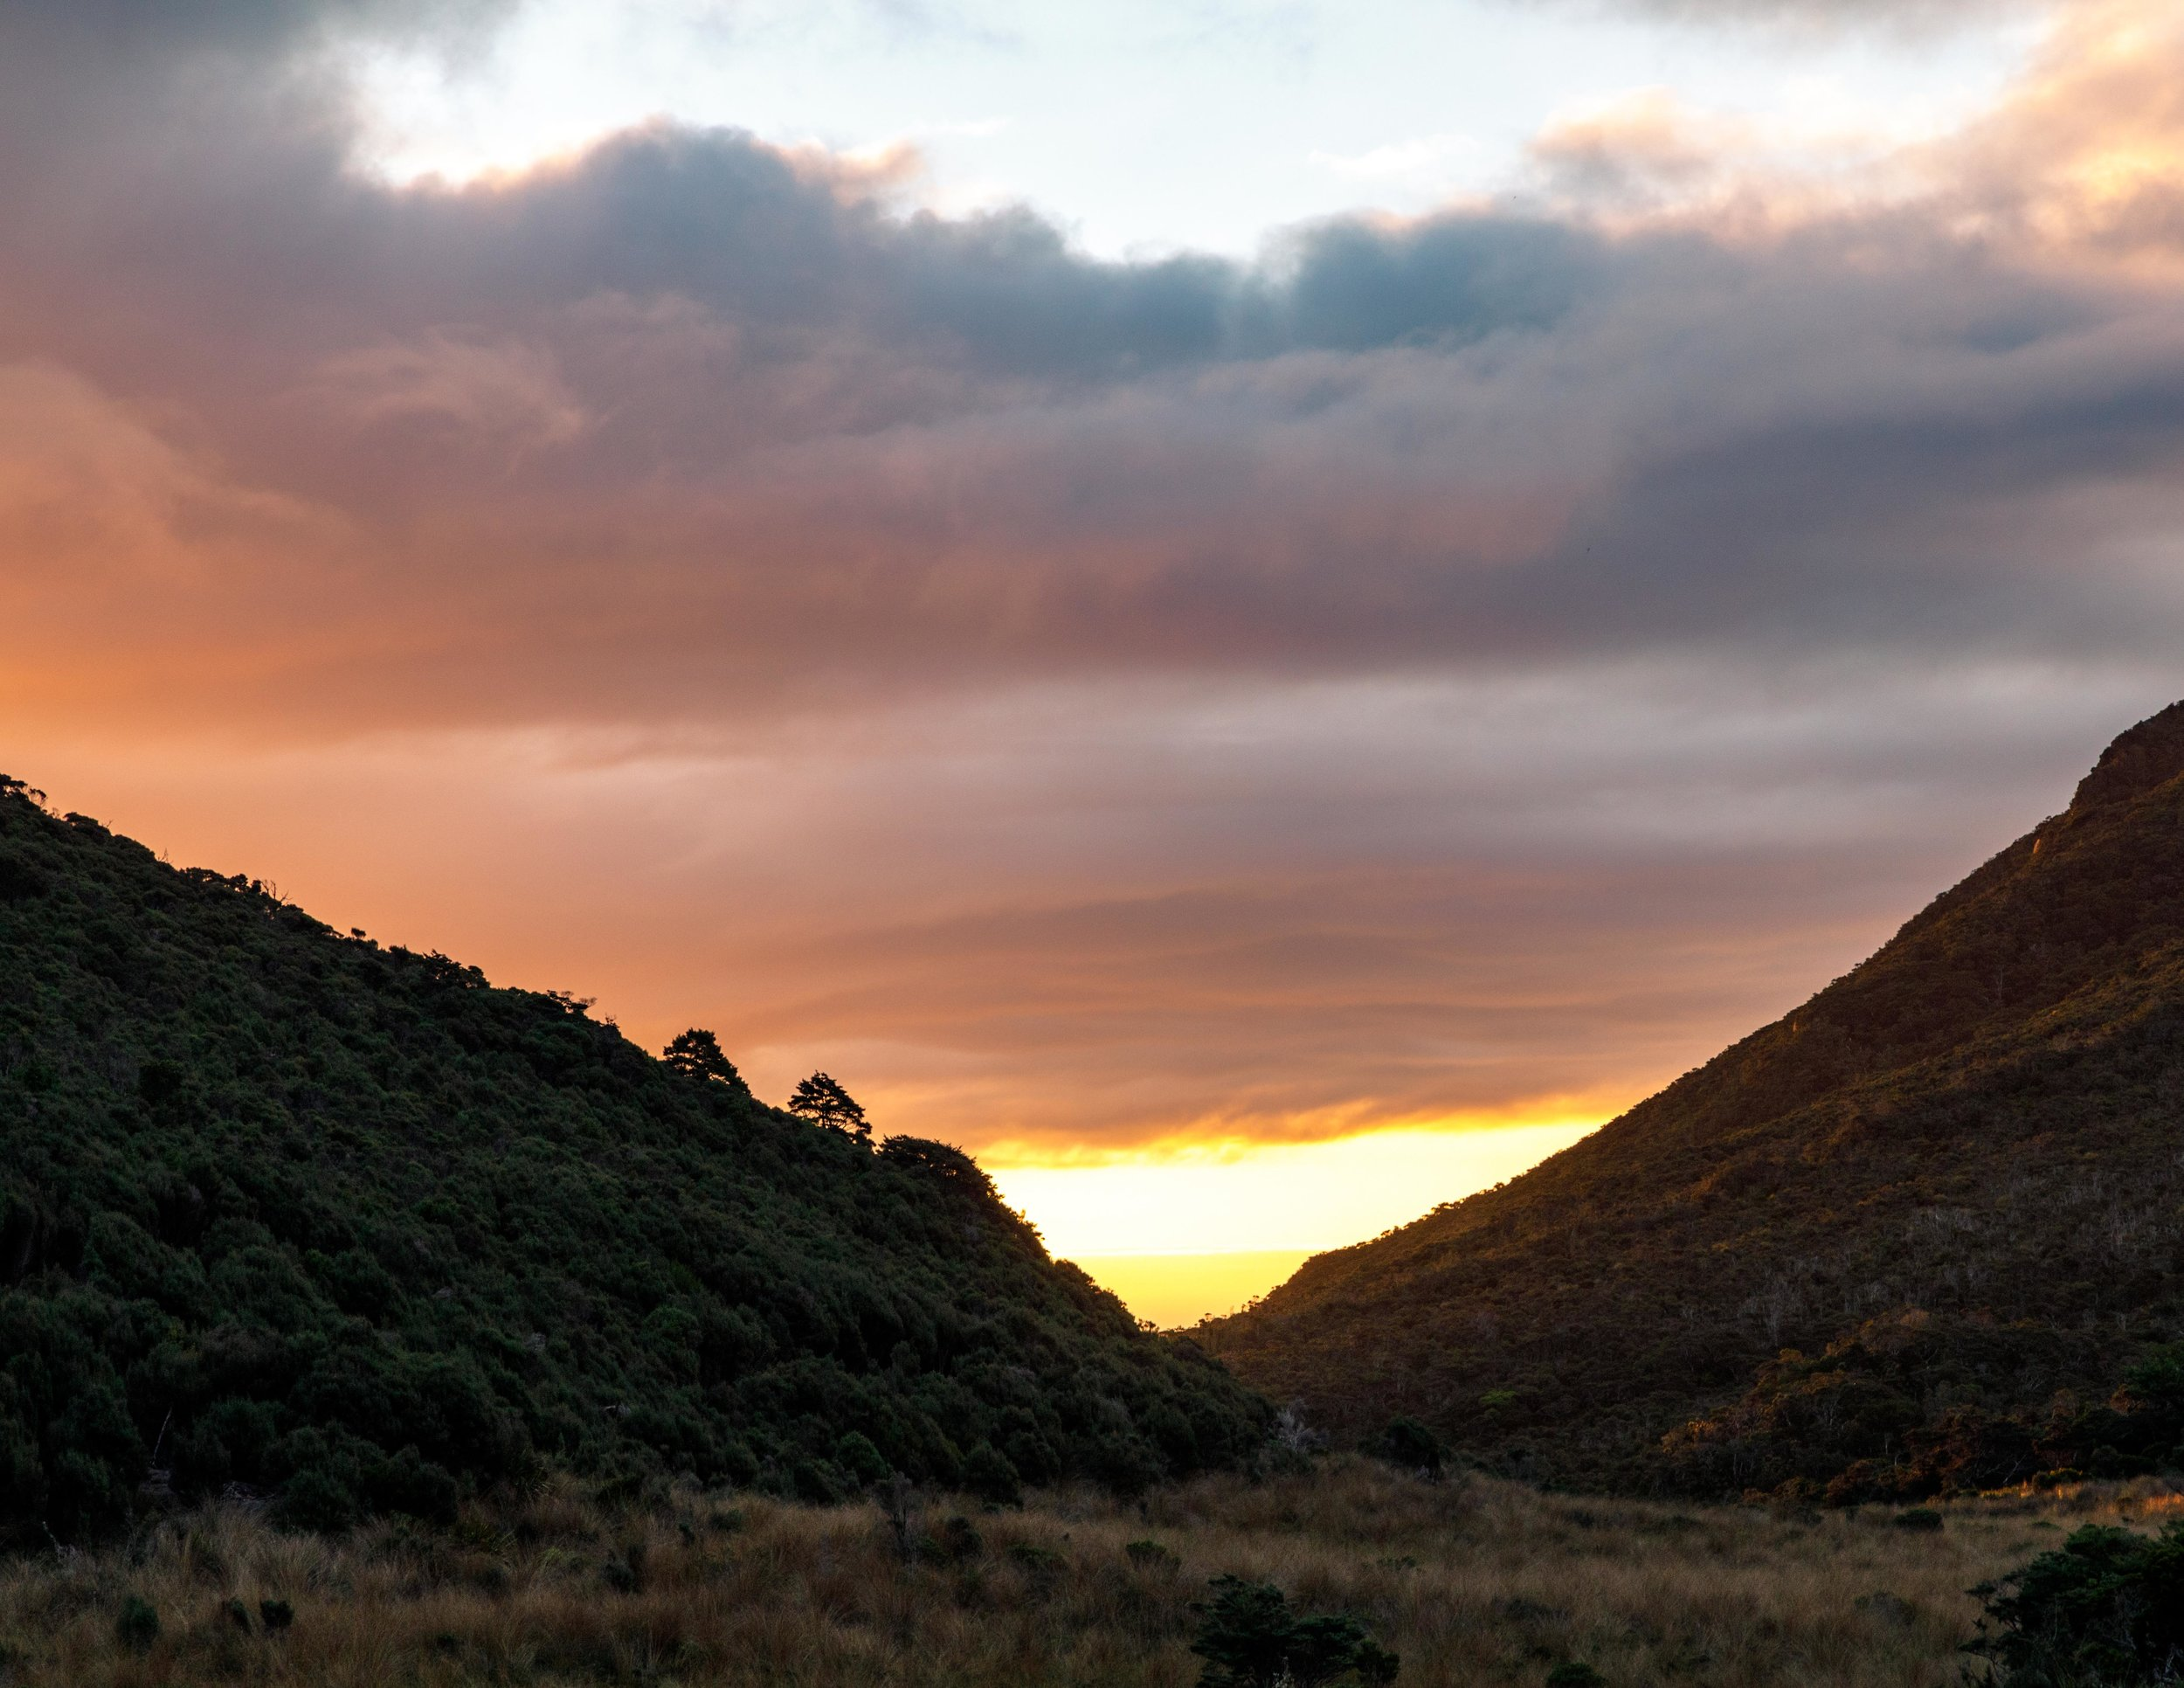 Sunset at Perrys Saddle Hut